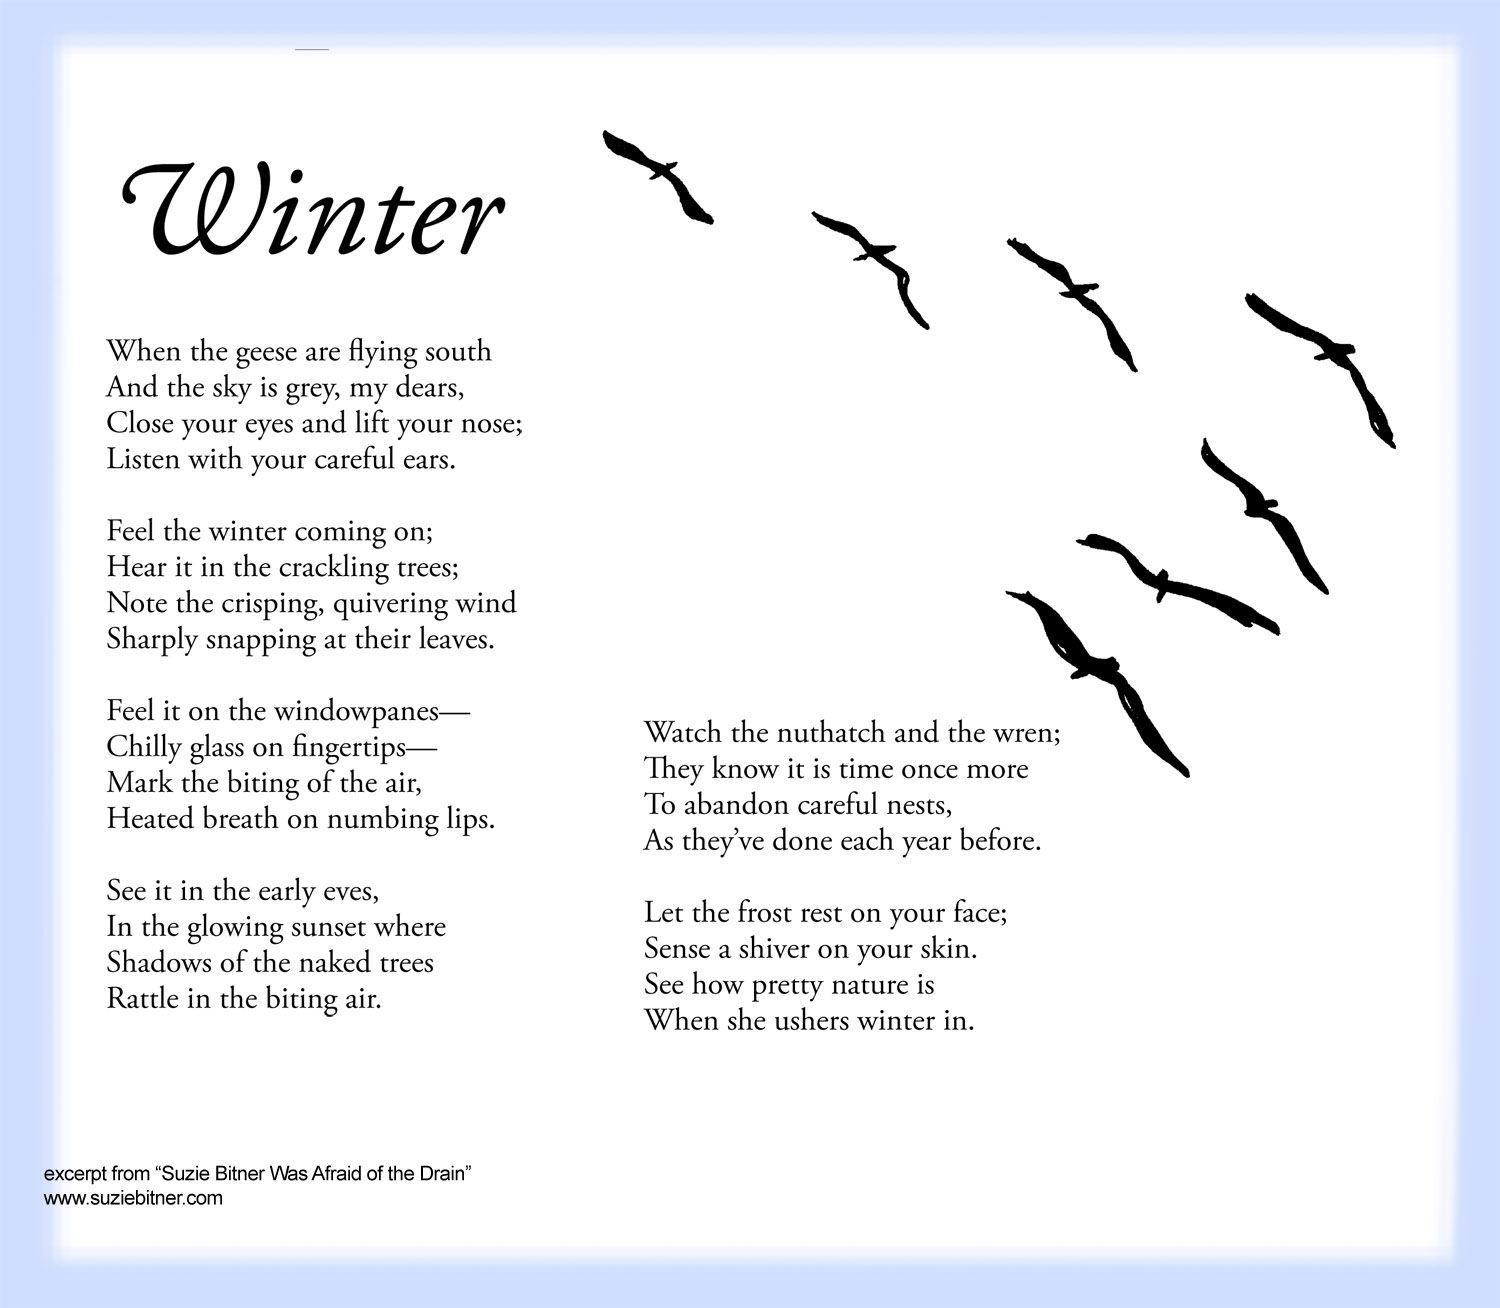 Sensory Language Winter Poem For Children Great For School And Classroom Activities Common